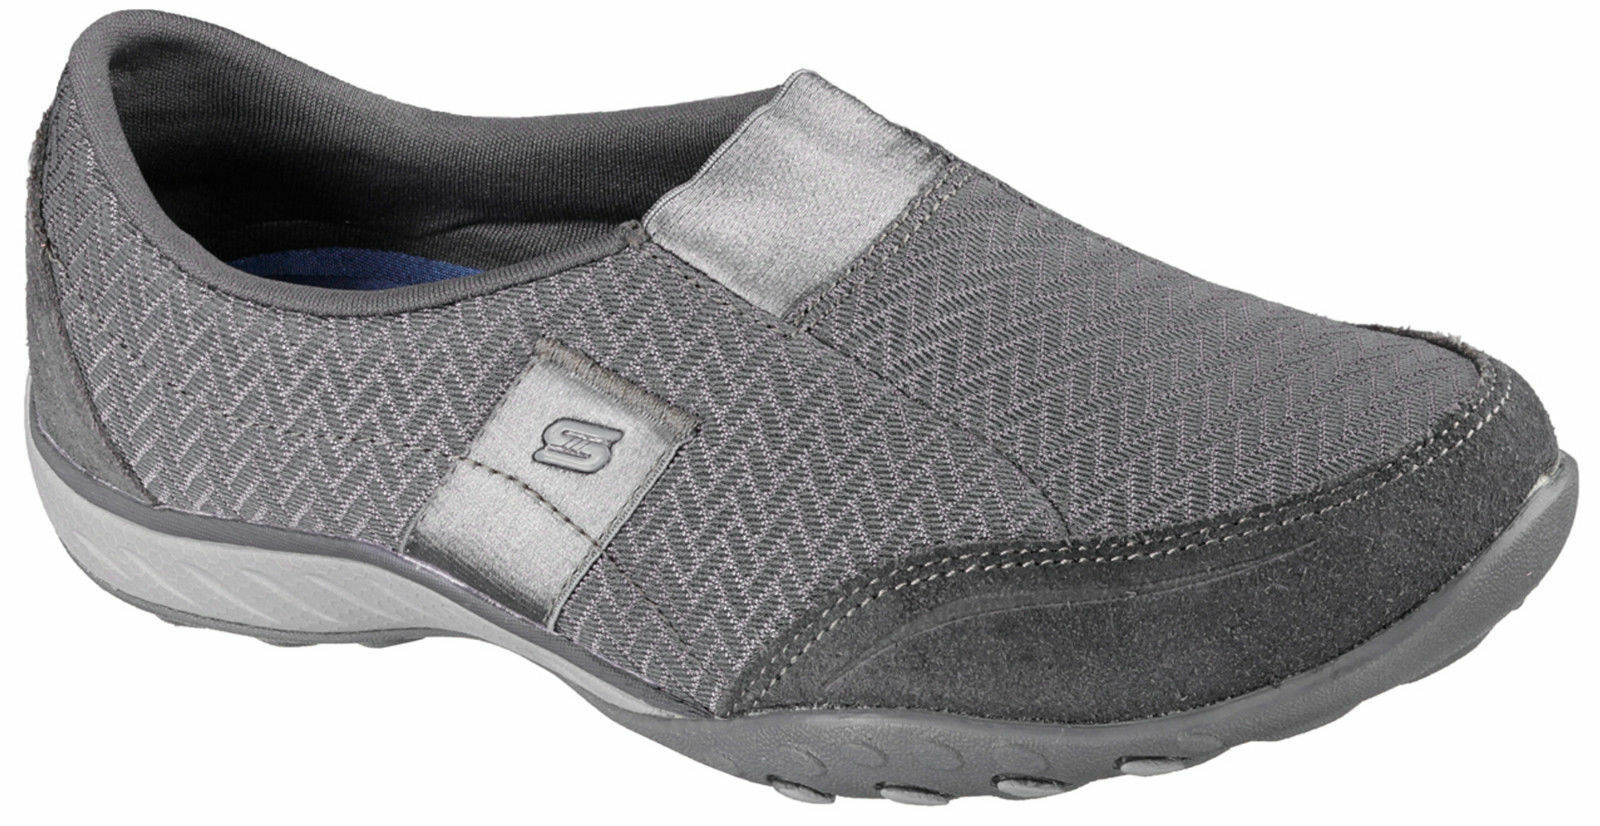 Skechers 22489 CCL Women's BREATHE EASY-RESOLUTION Slip On CHARCOAL Shoes US 7